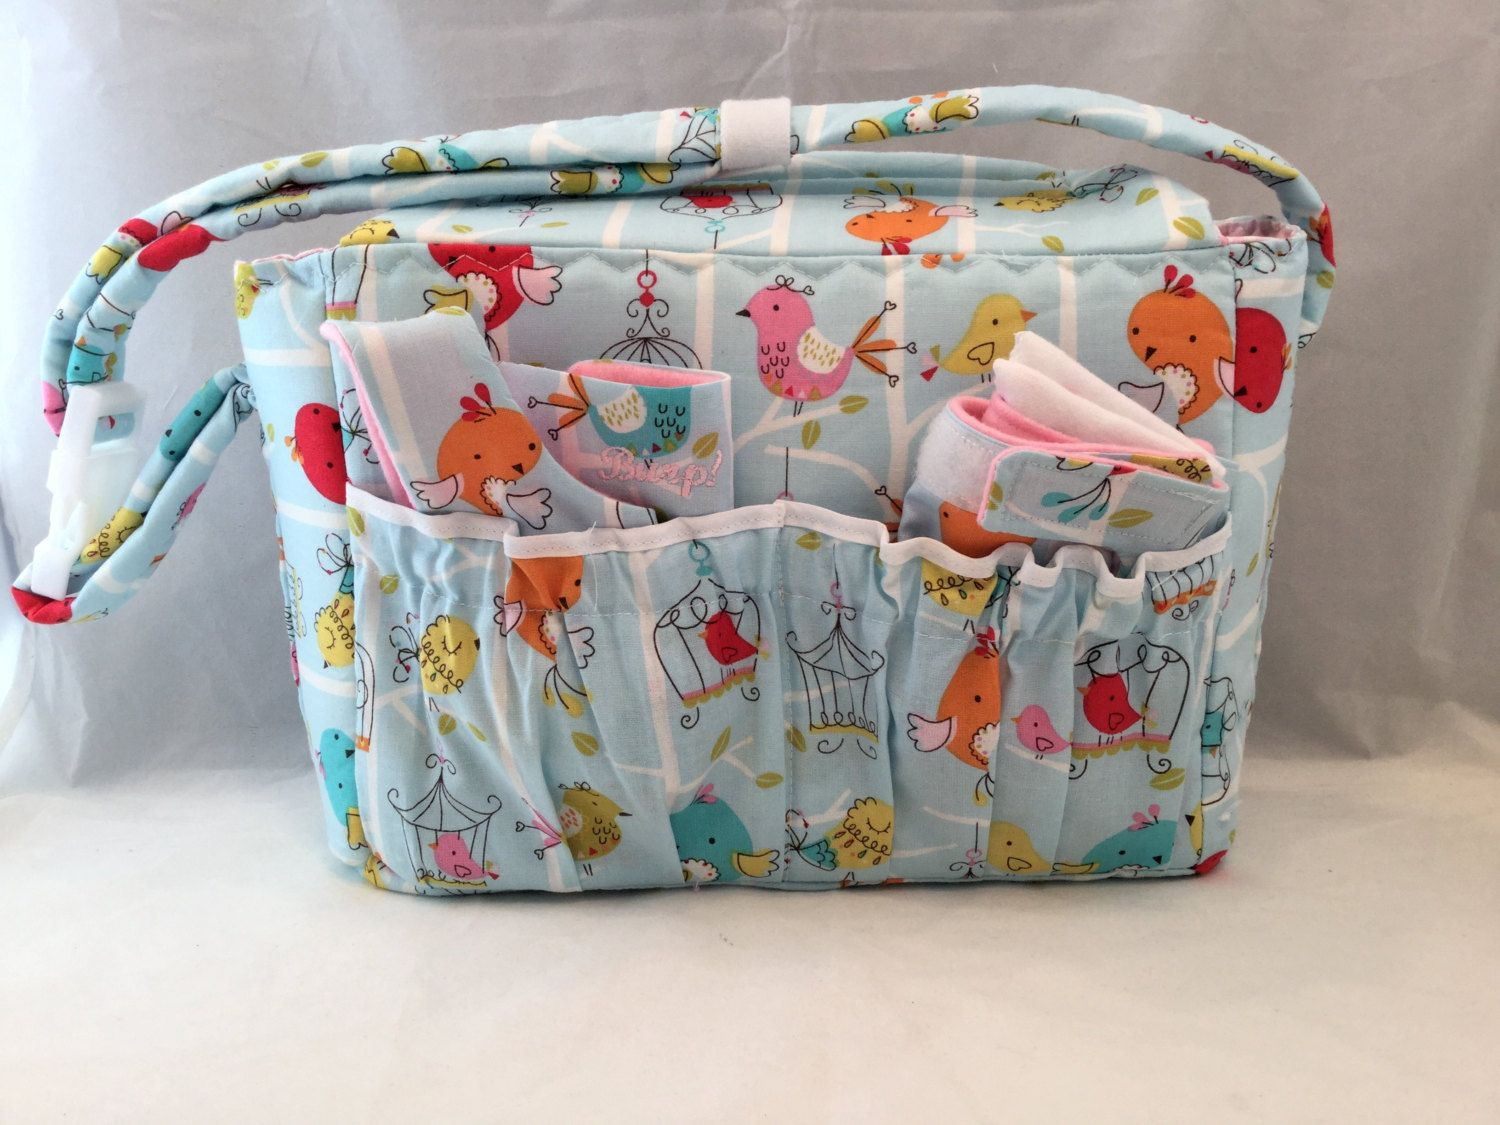 Doll size Diaper Bags in Tweet! with Pink and White Check Lining and all the goodies by GSRdolls on Etsy